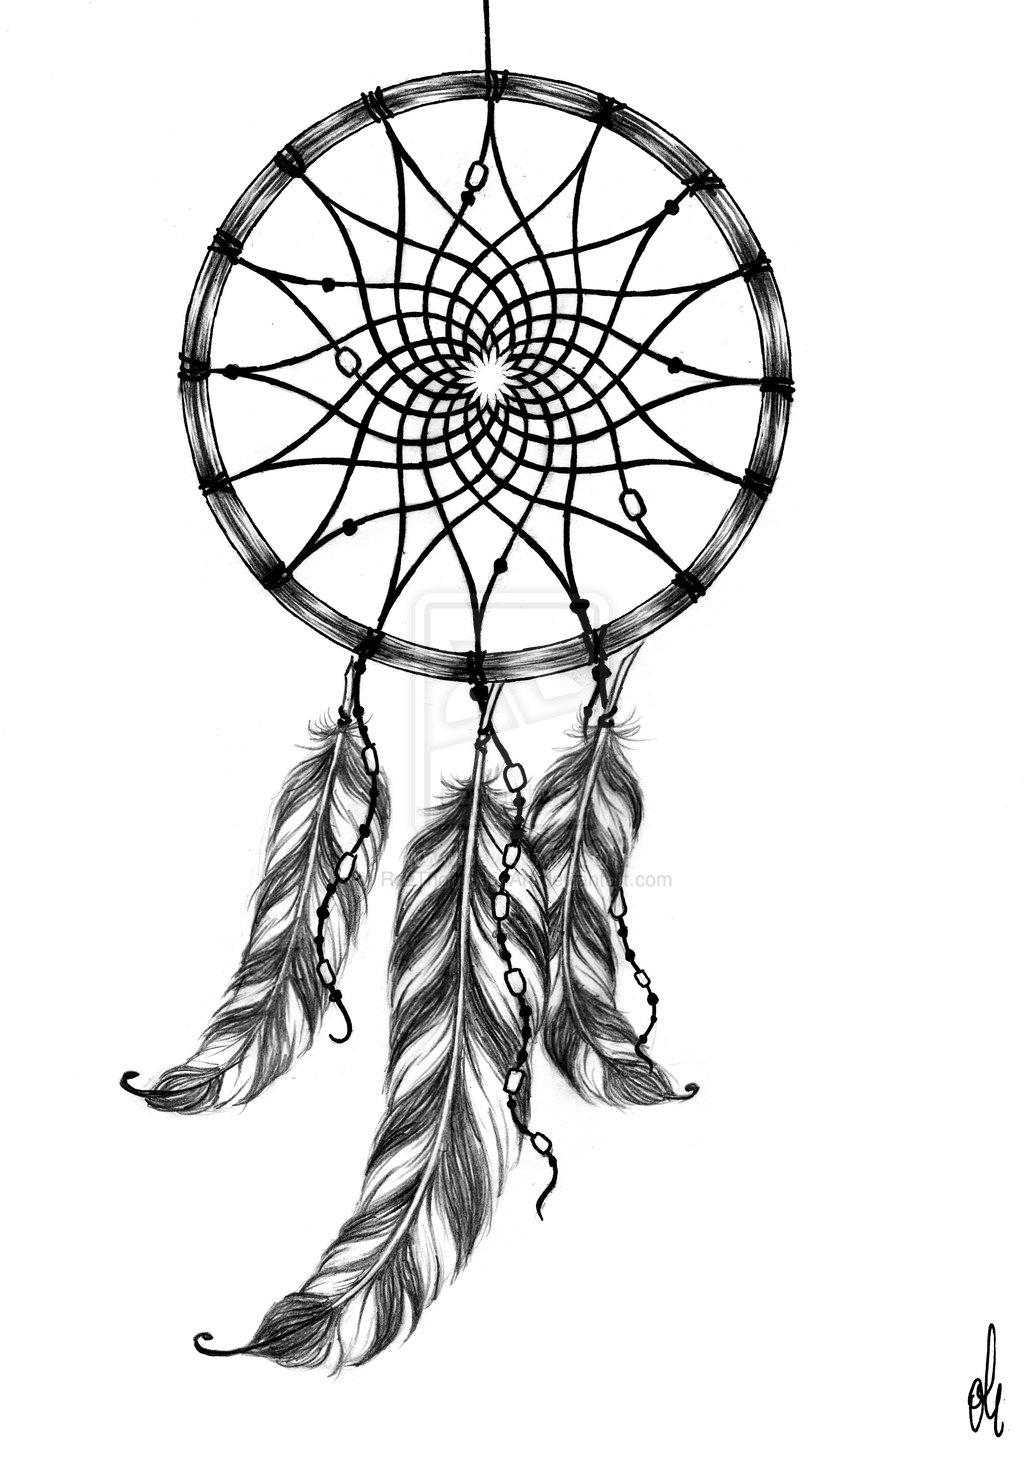 Wolf Dreamcatcher Tribal Tattoo Design photo - 3